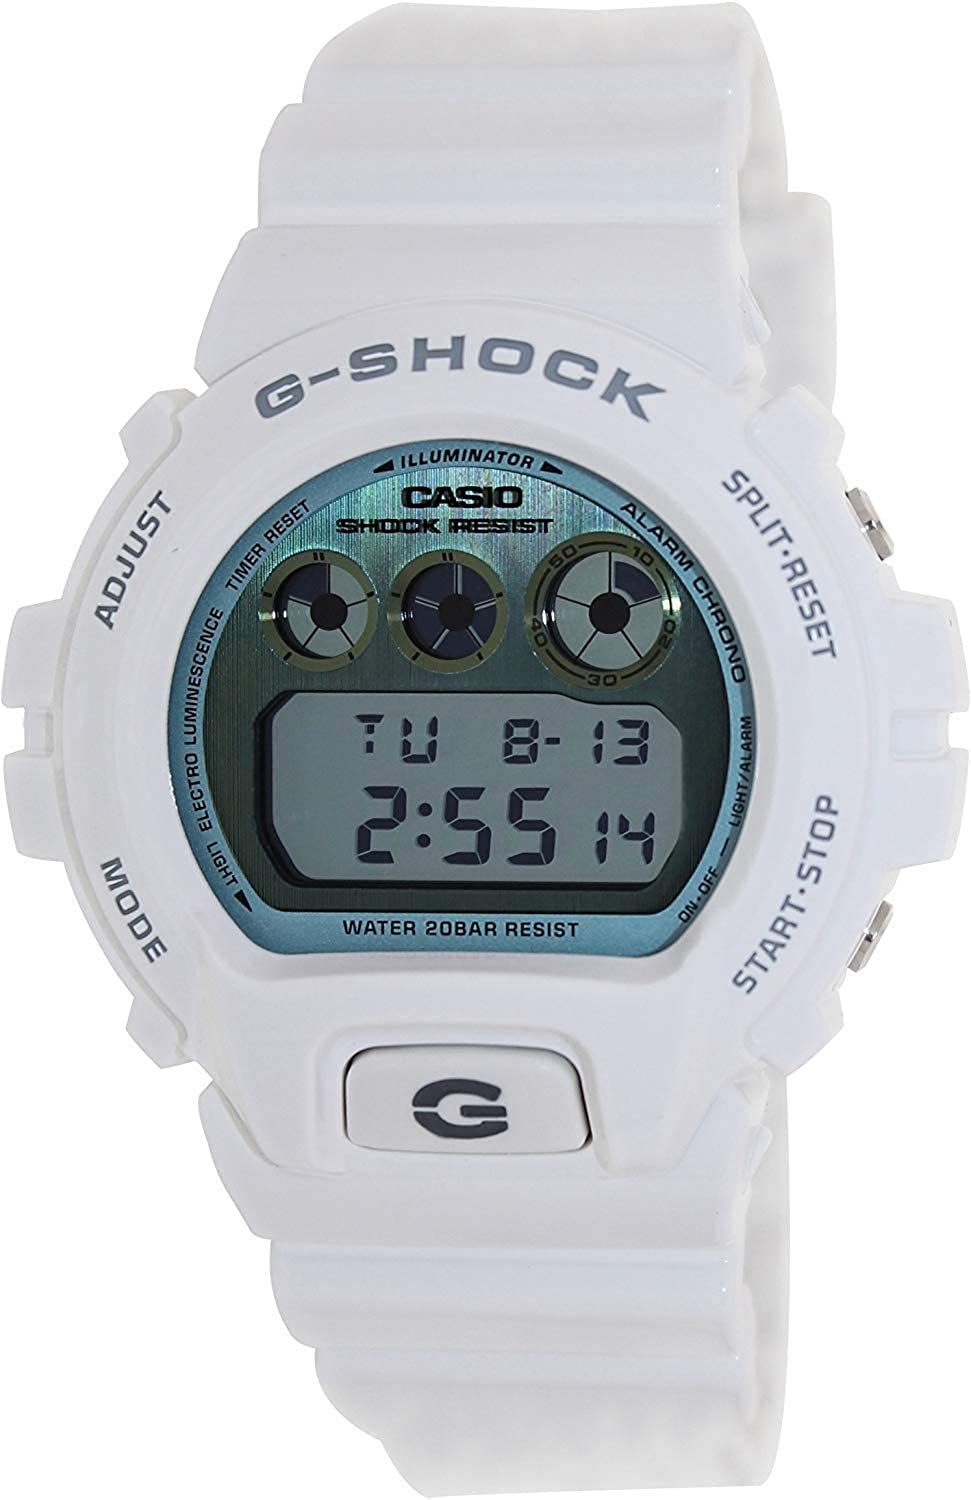 G-Shock Men s 6900 Watch One Size White Watch Casio